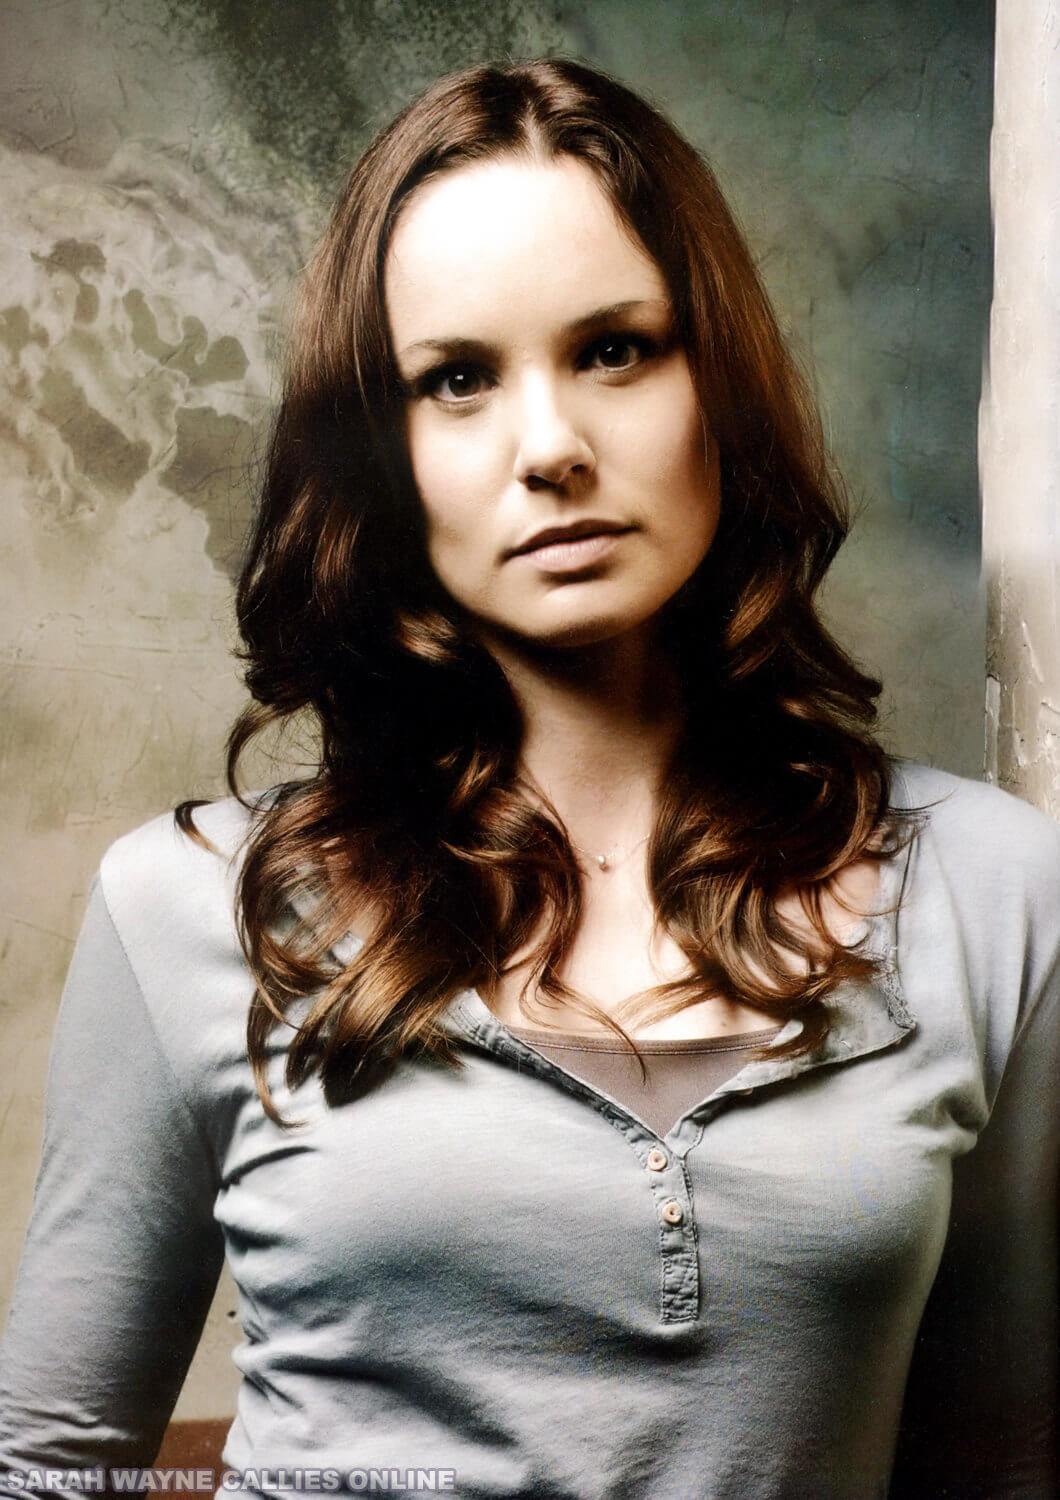 sarah wayne callies wow